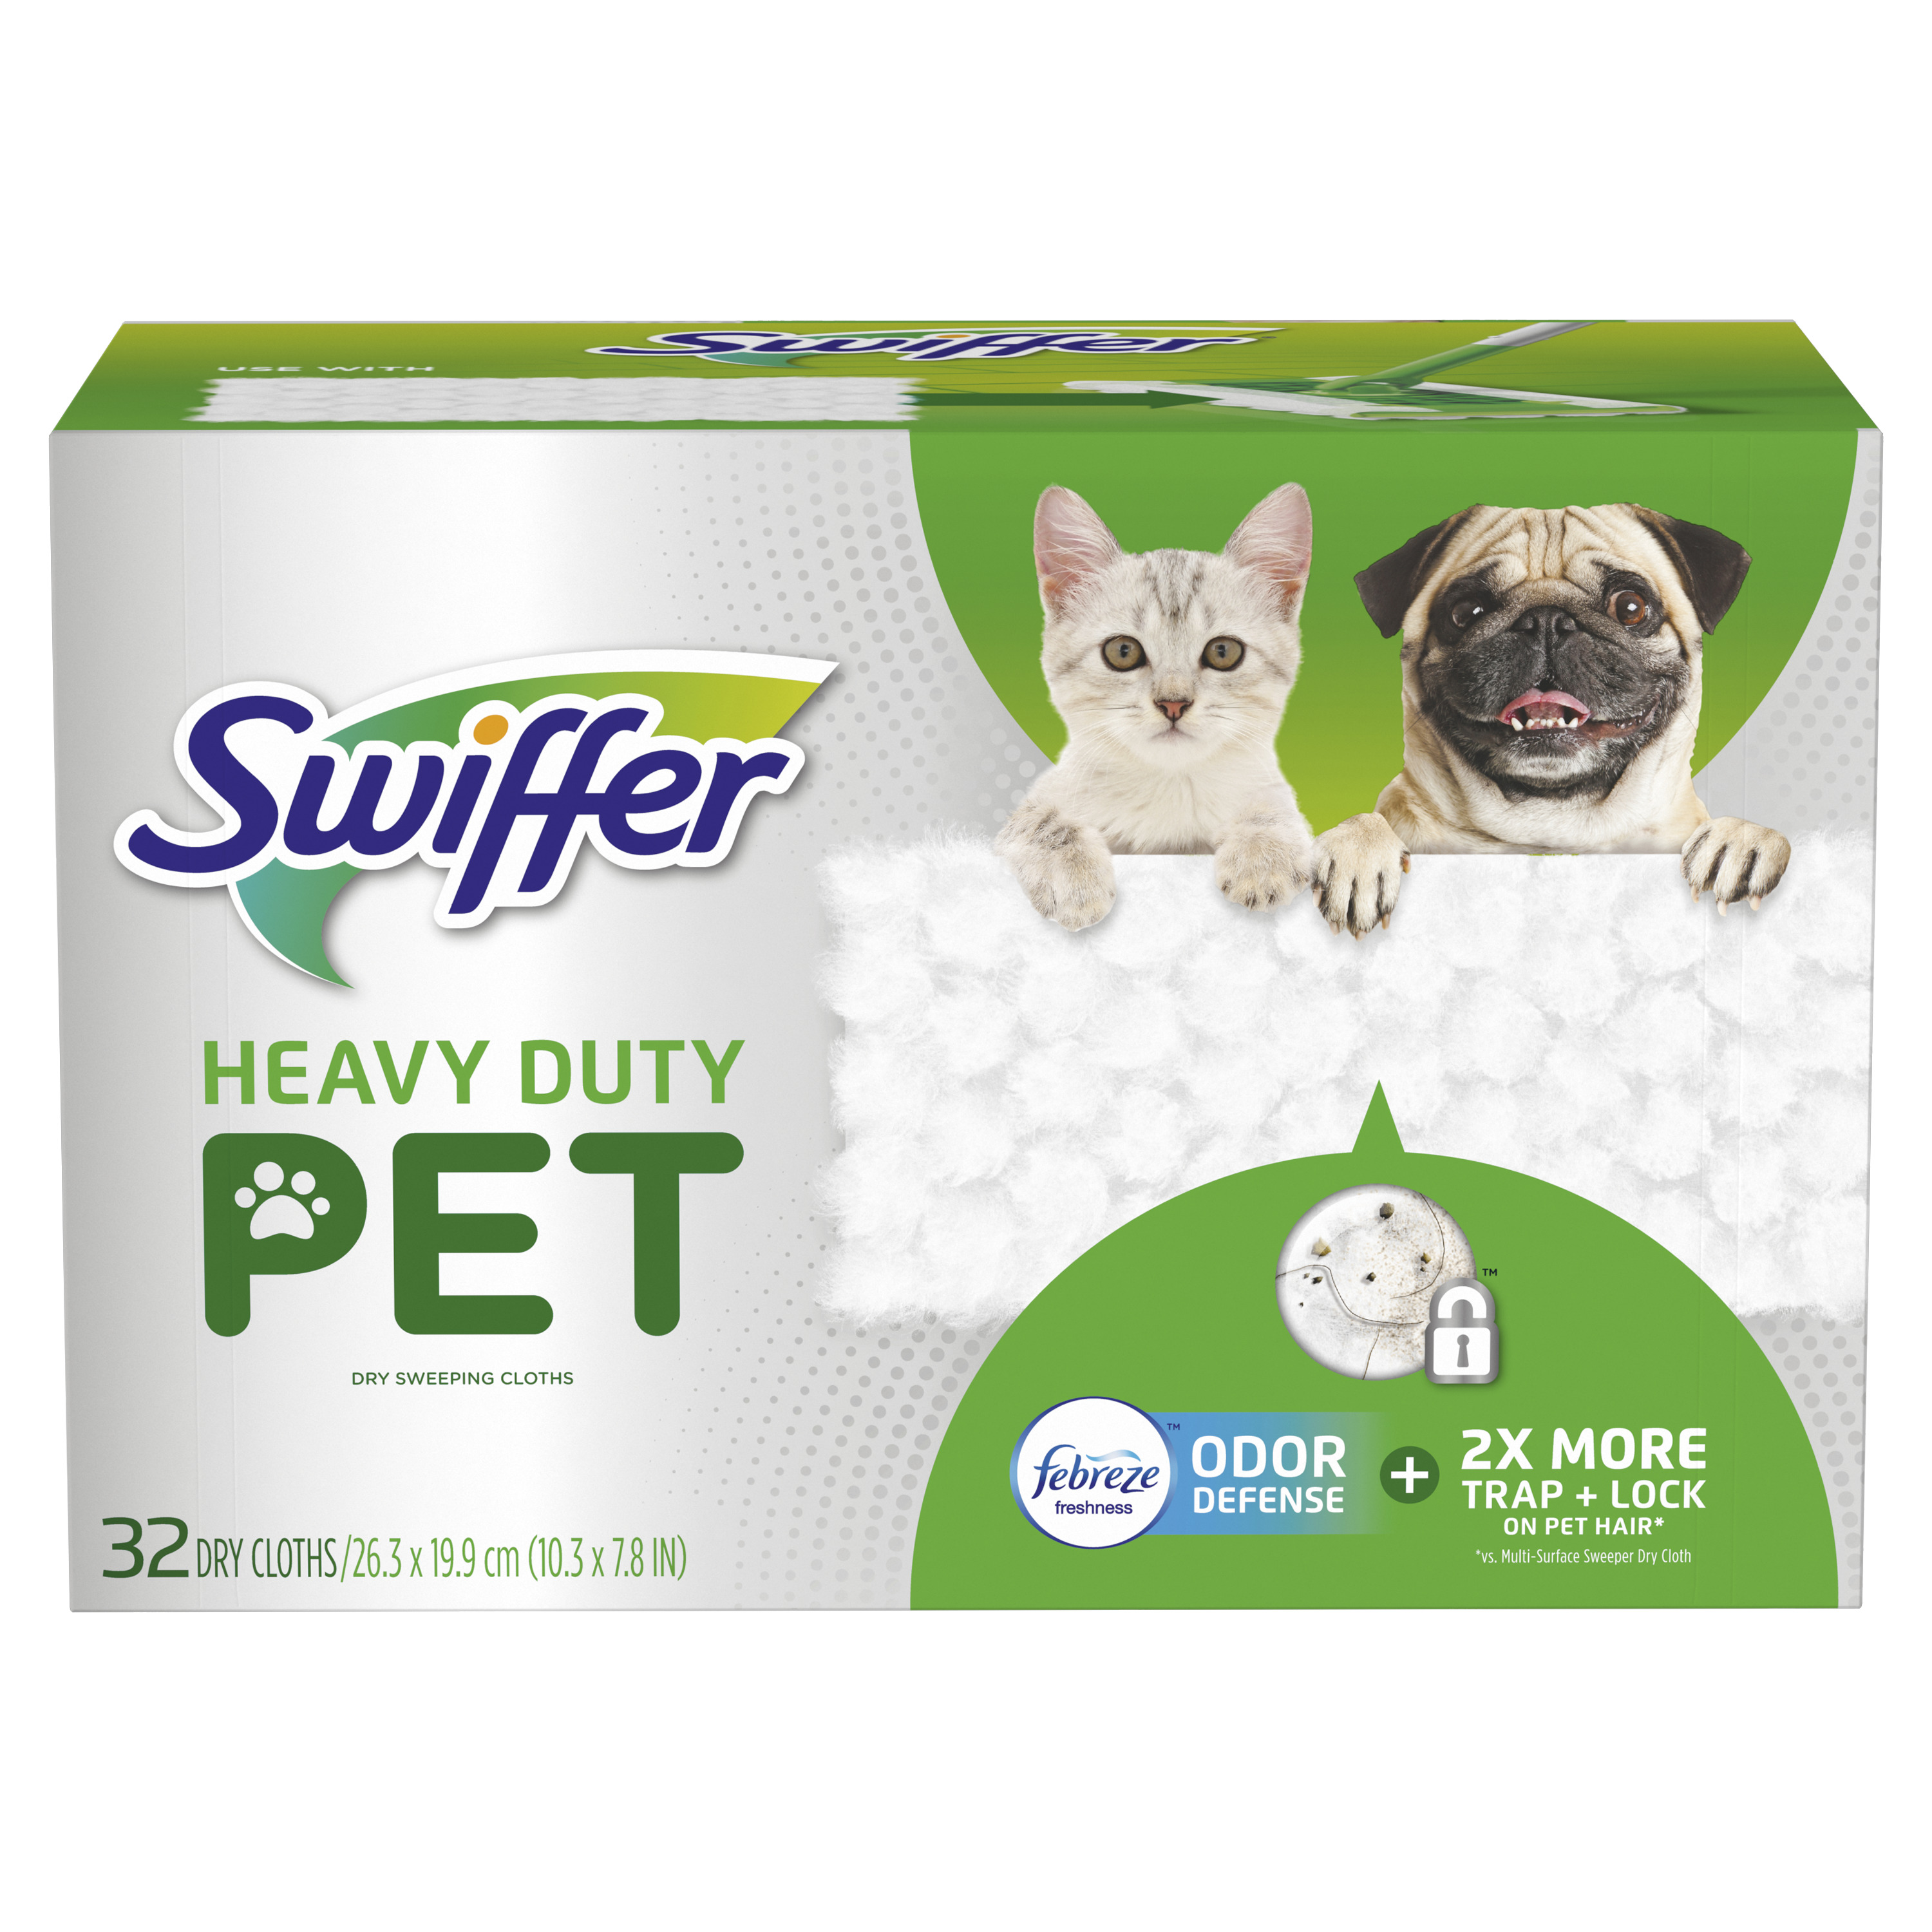 Swiffer Sweeper Pet Heavy Duty Dry Sweeping Cloths with Febreze Odor Defense, 32 count